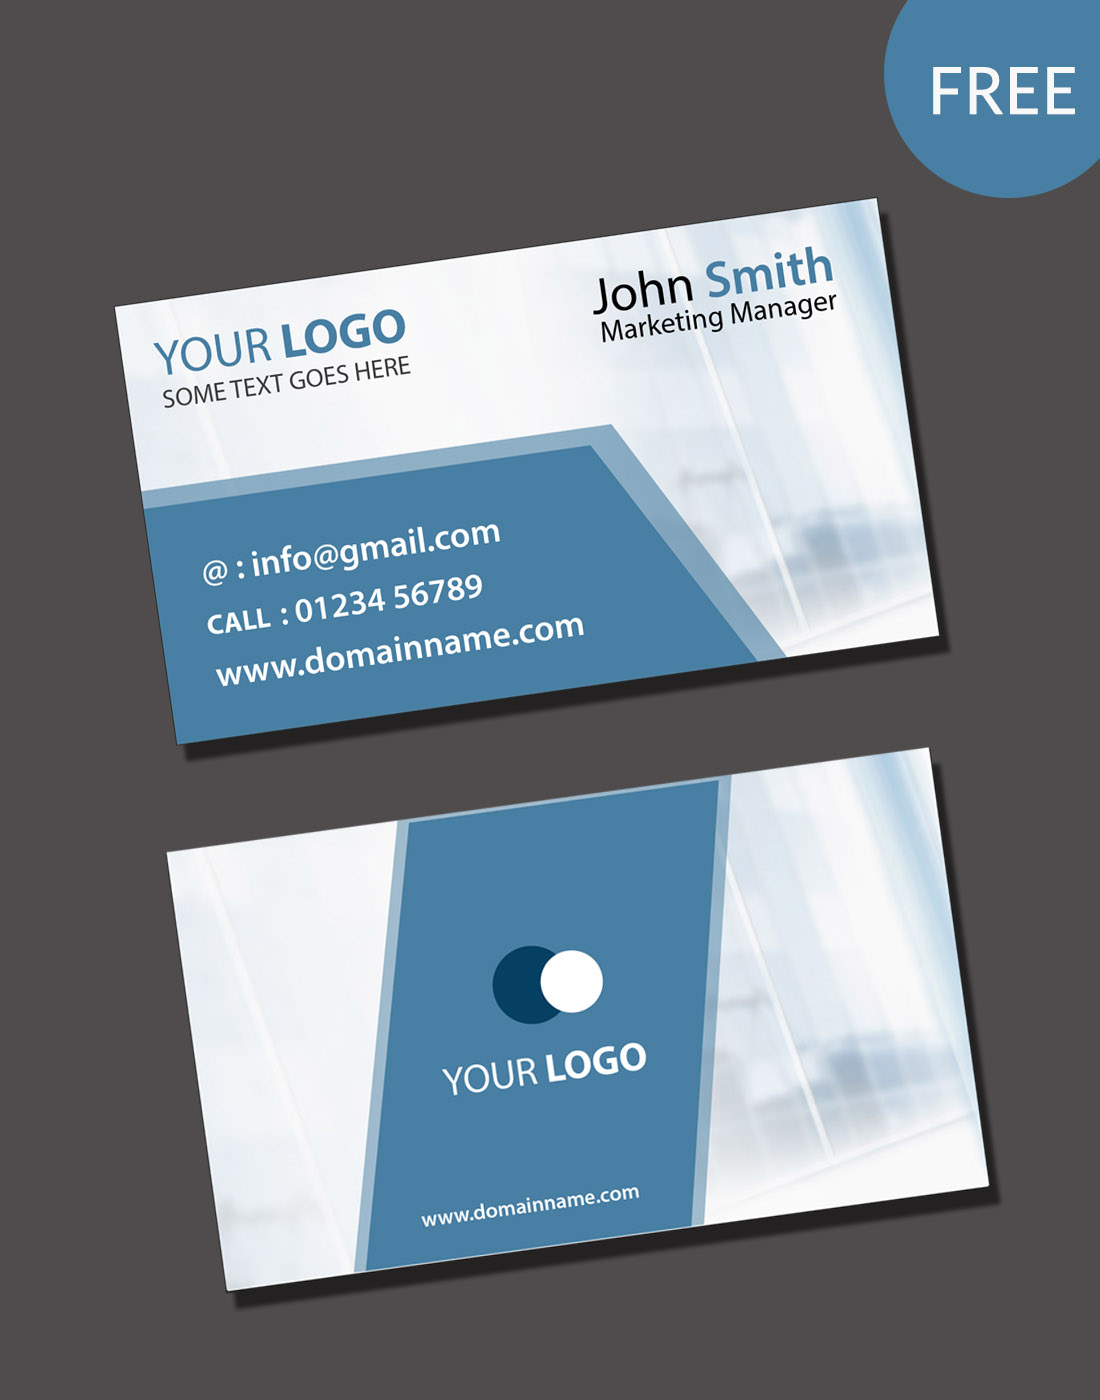 Business Card Archives Free Website Templates Download Psd - Business card psd template download